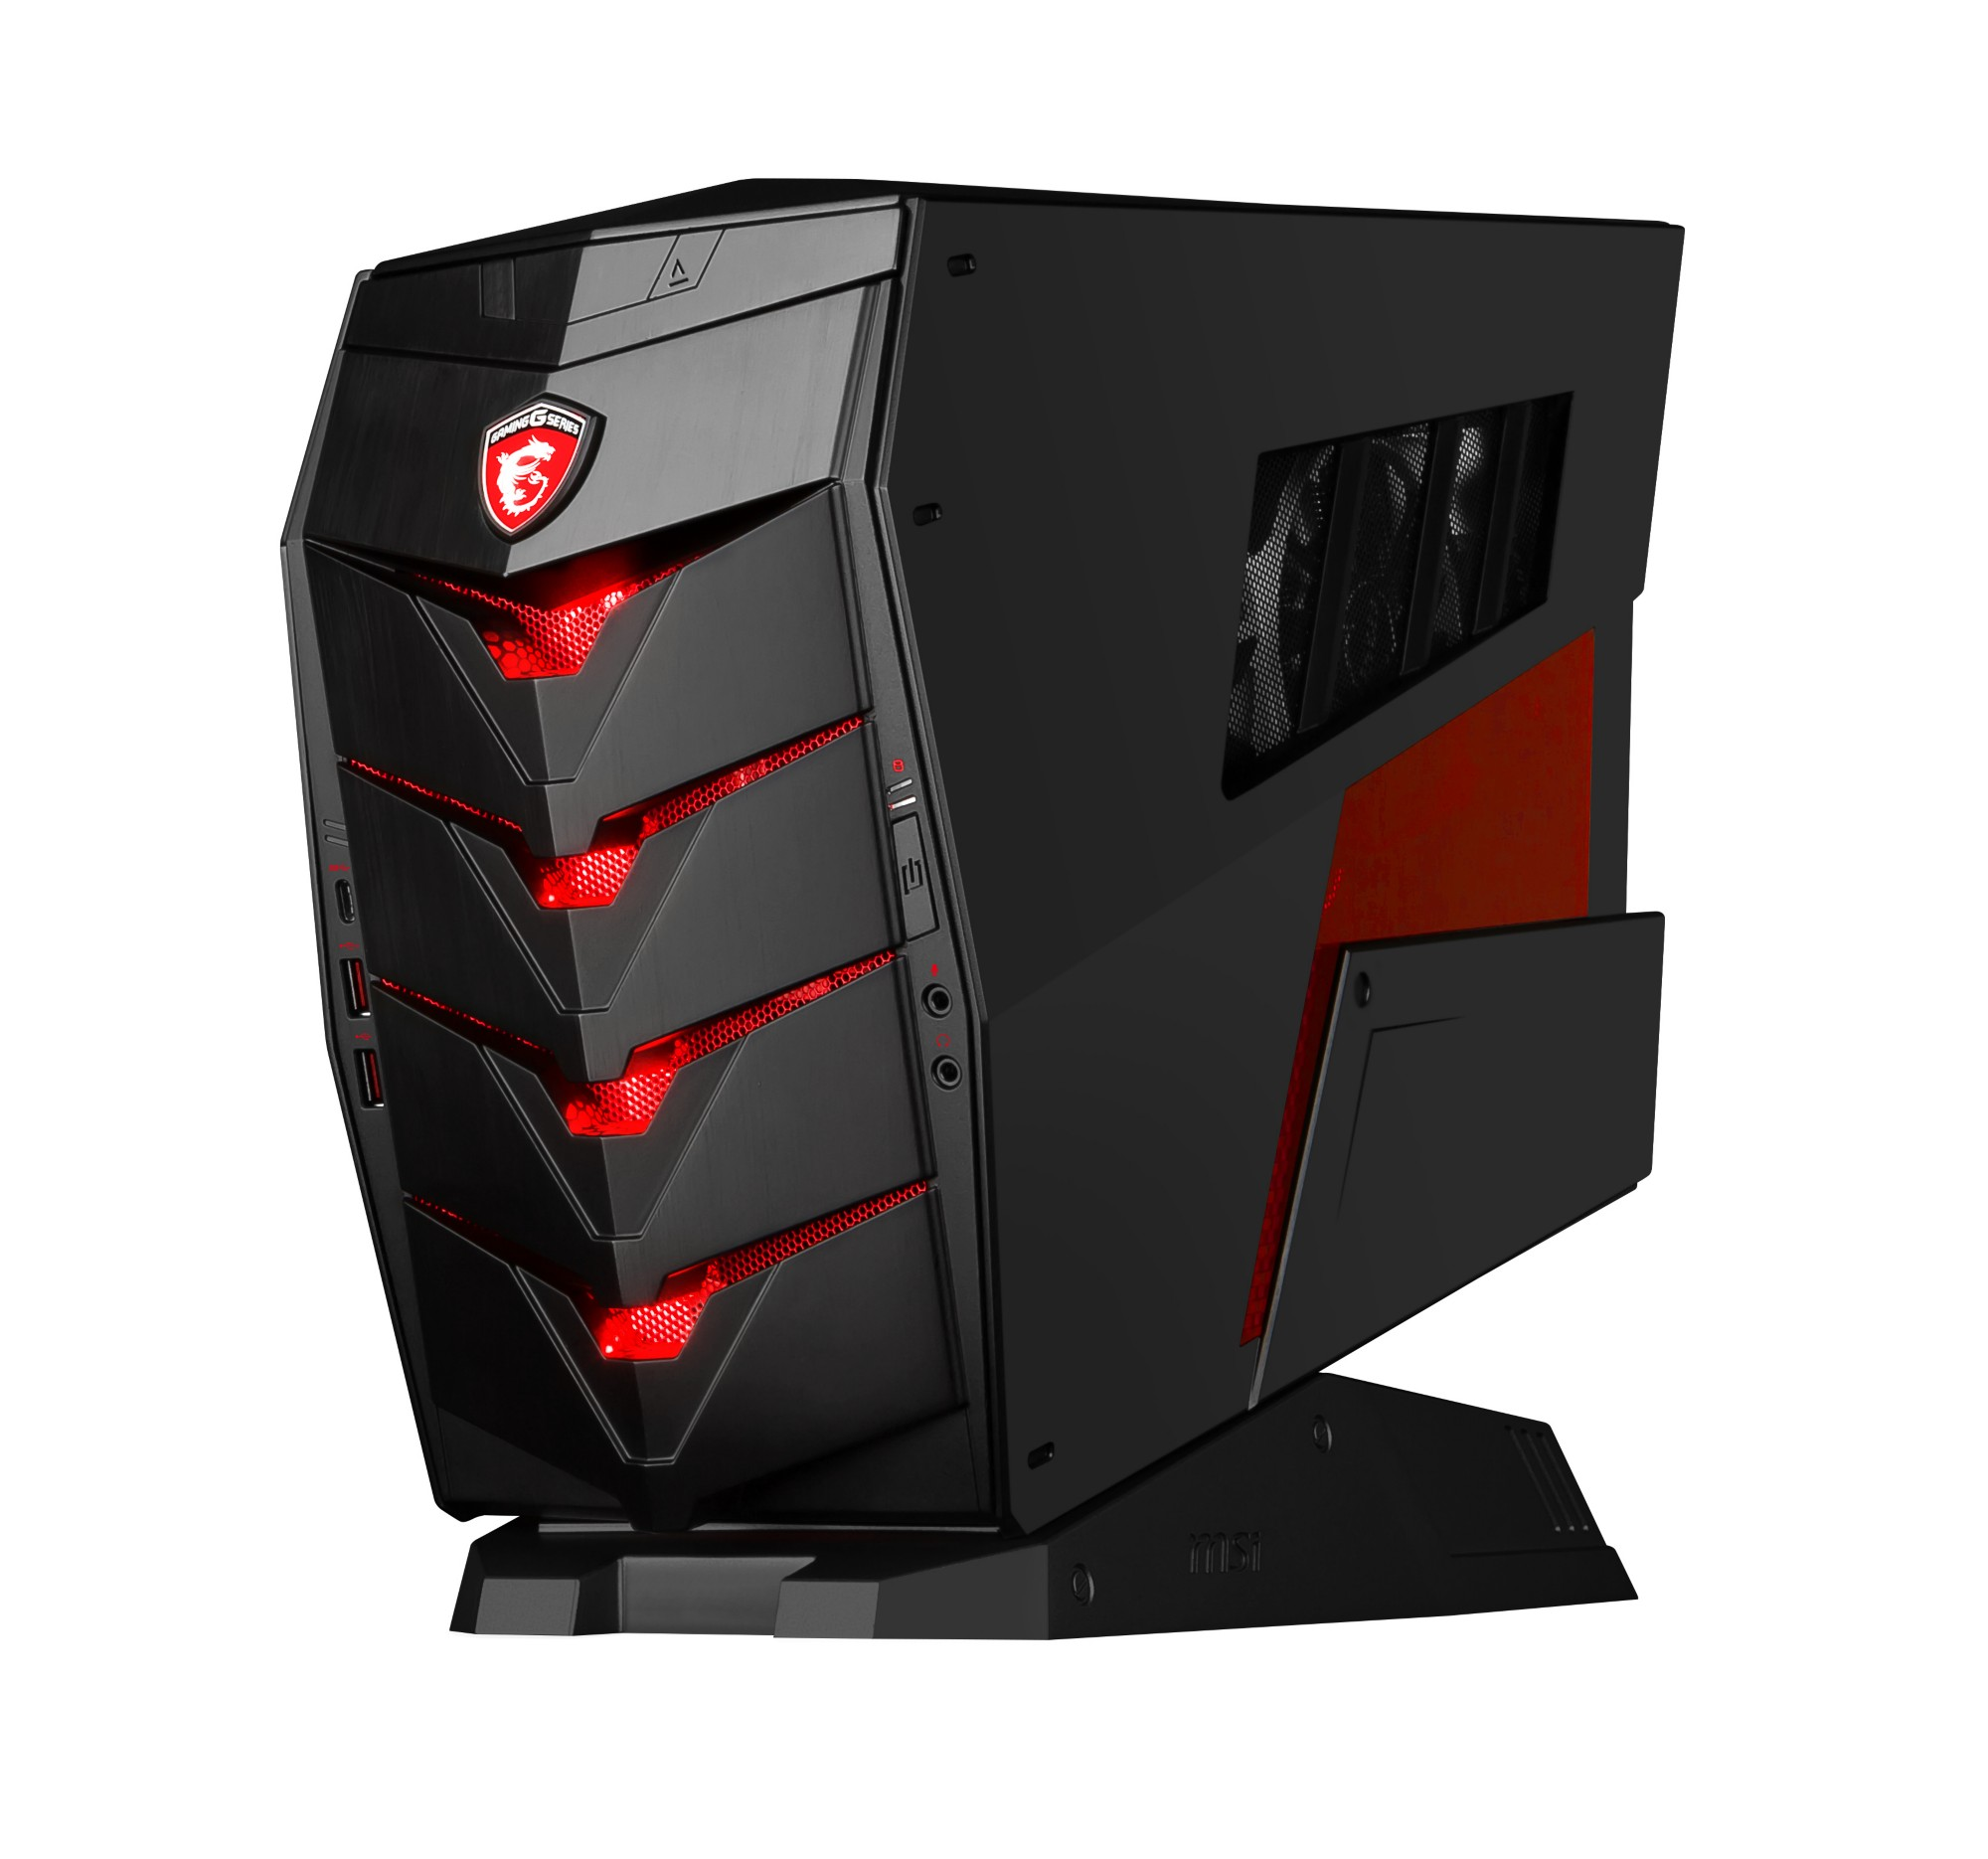 MSI AEGIS -204EU 3.4GHZ I7-6700 DESKTOP BLACK,RED PC